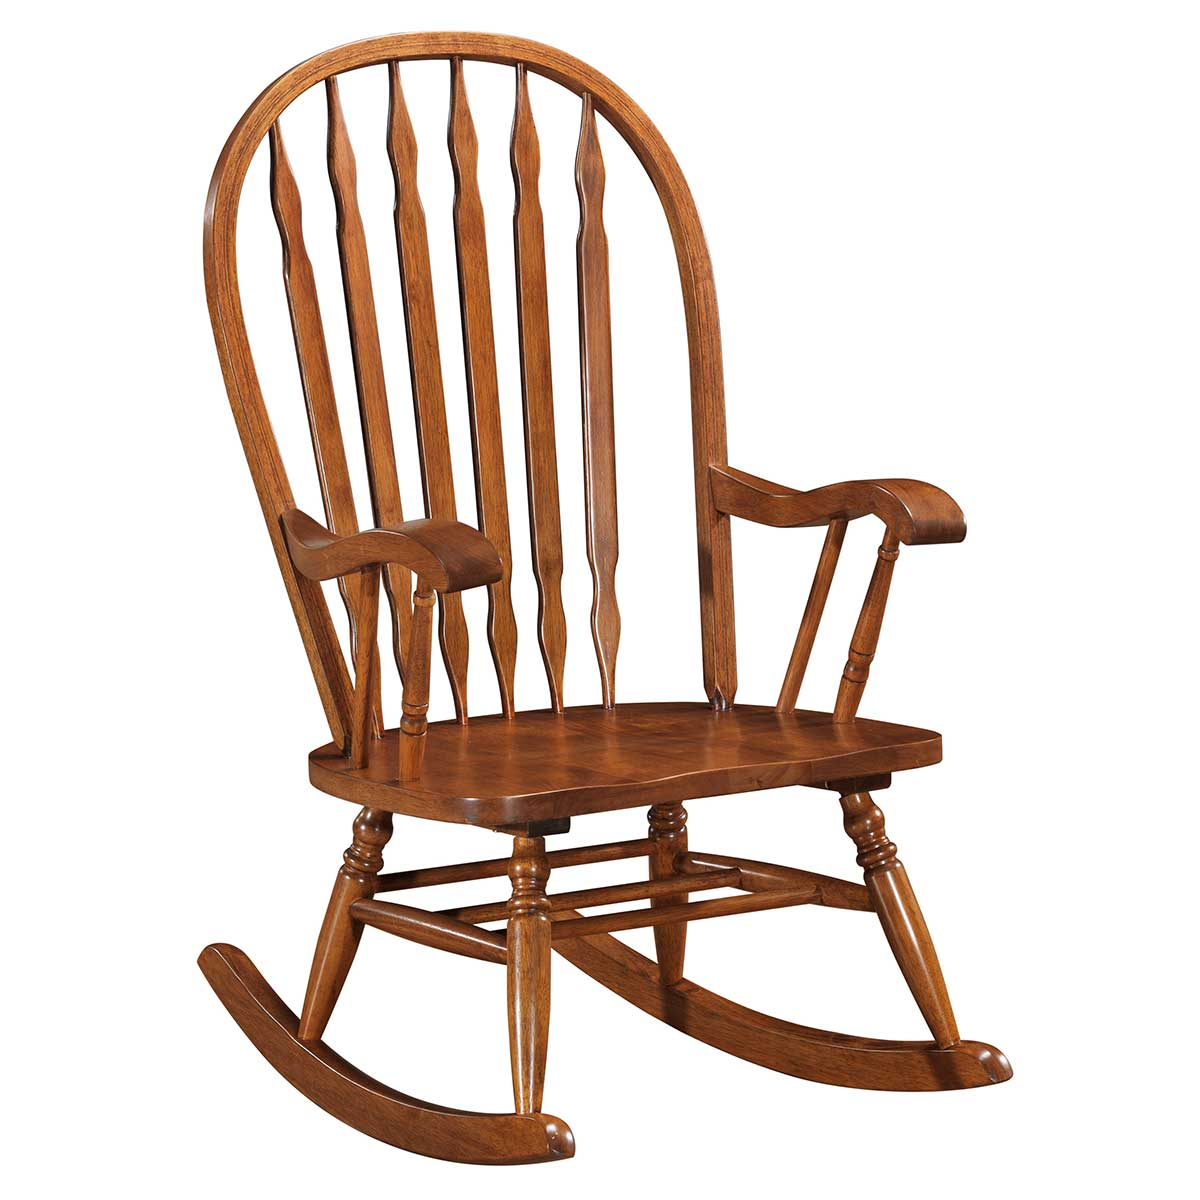 Indoor Wooden Rocking Chairs - Cracker Barrel Old Country Store